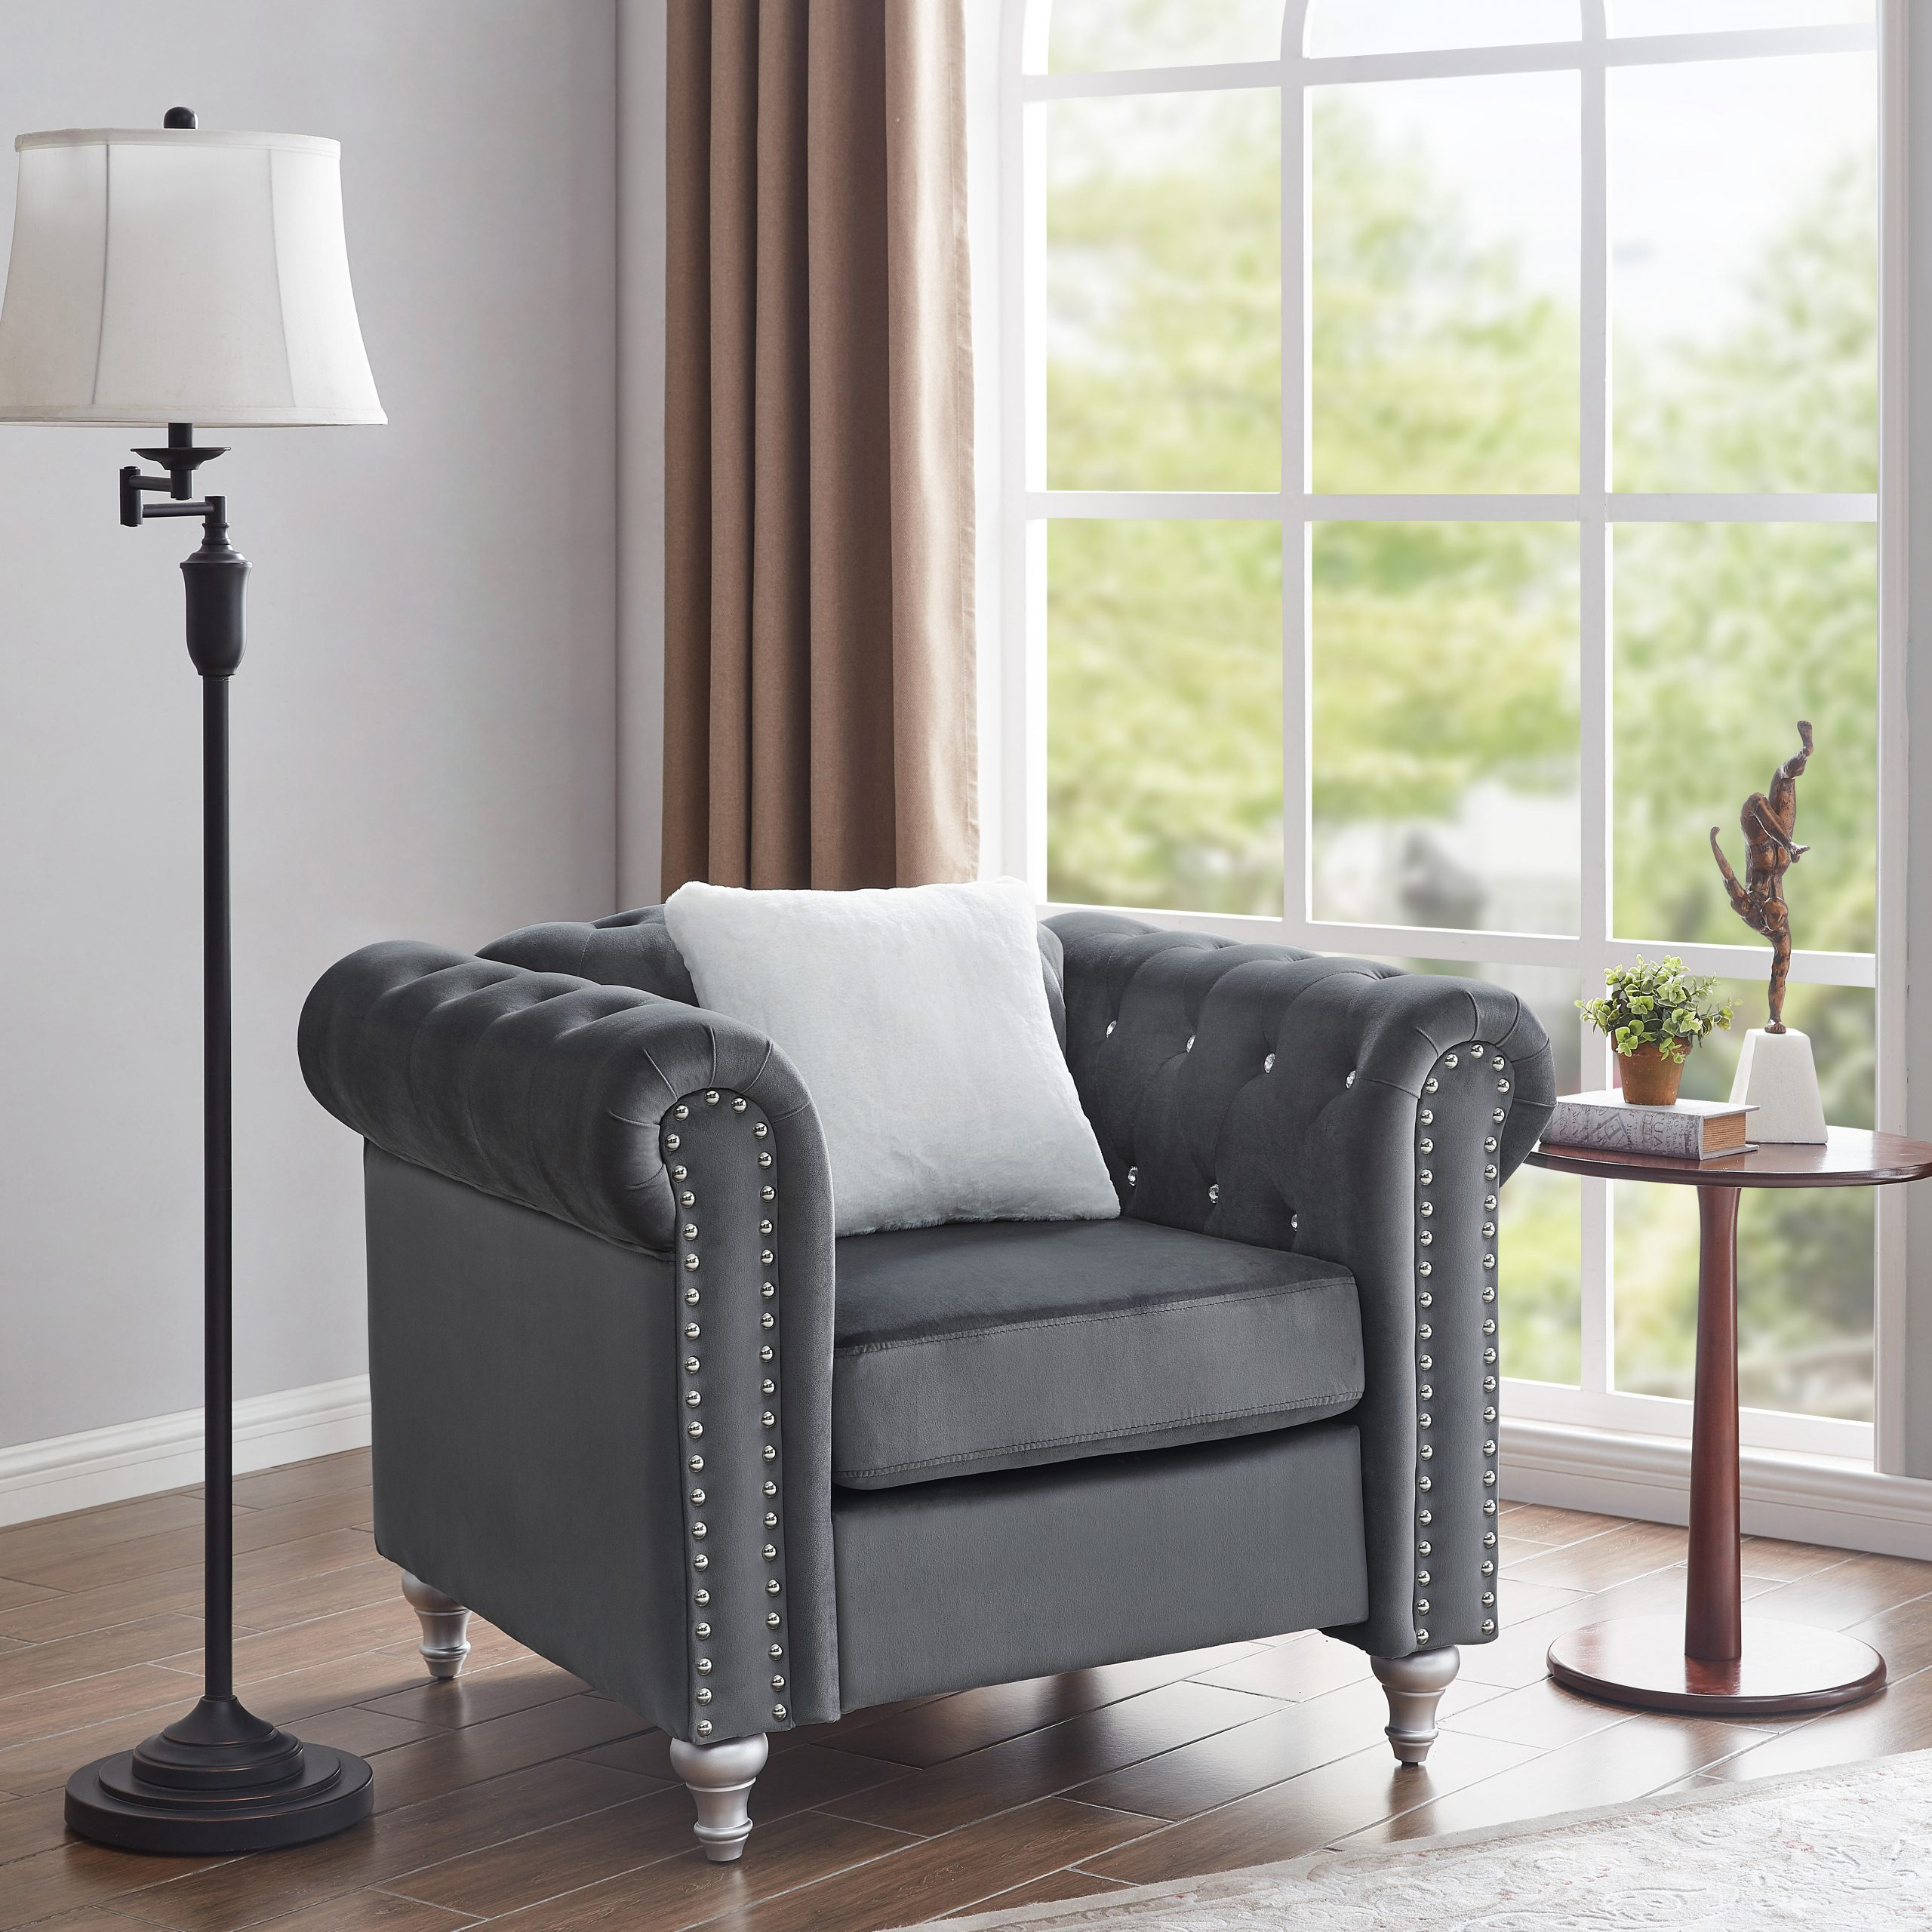 2020 Lassiter Tufted Chesterfield Chair With Starks Tufted Fabric Chesterfield Chair And Ottoman Sets (View 2 of 20)